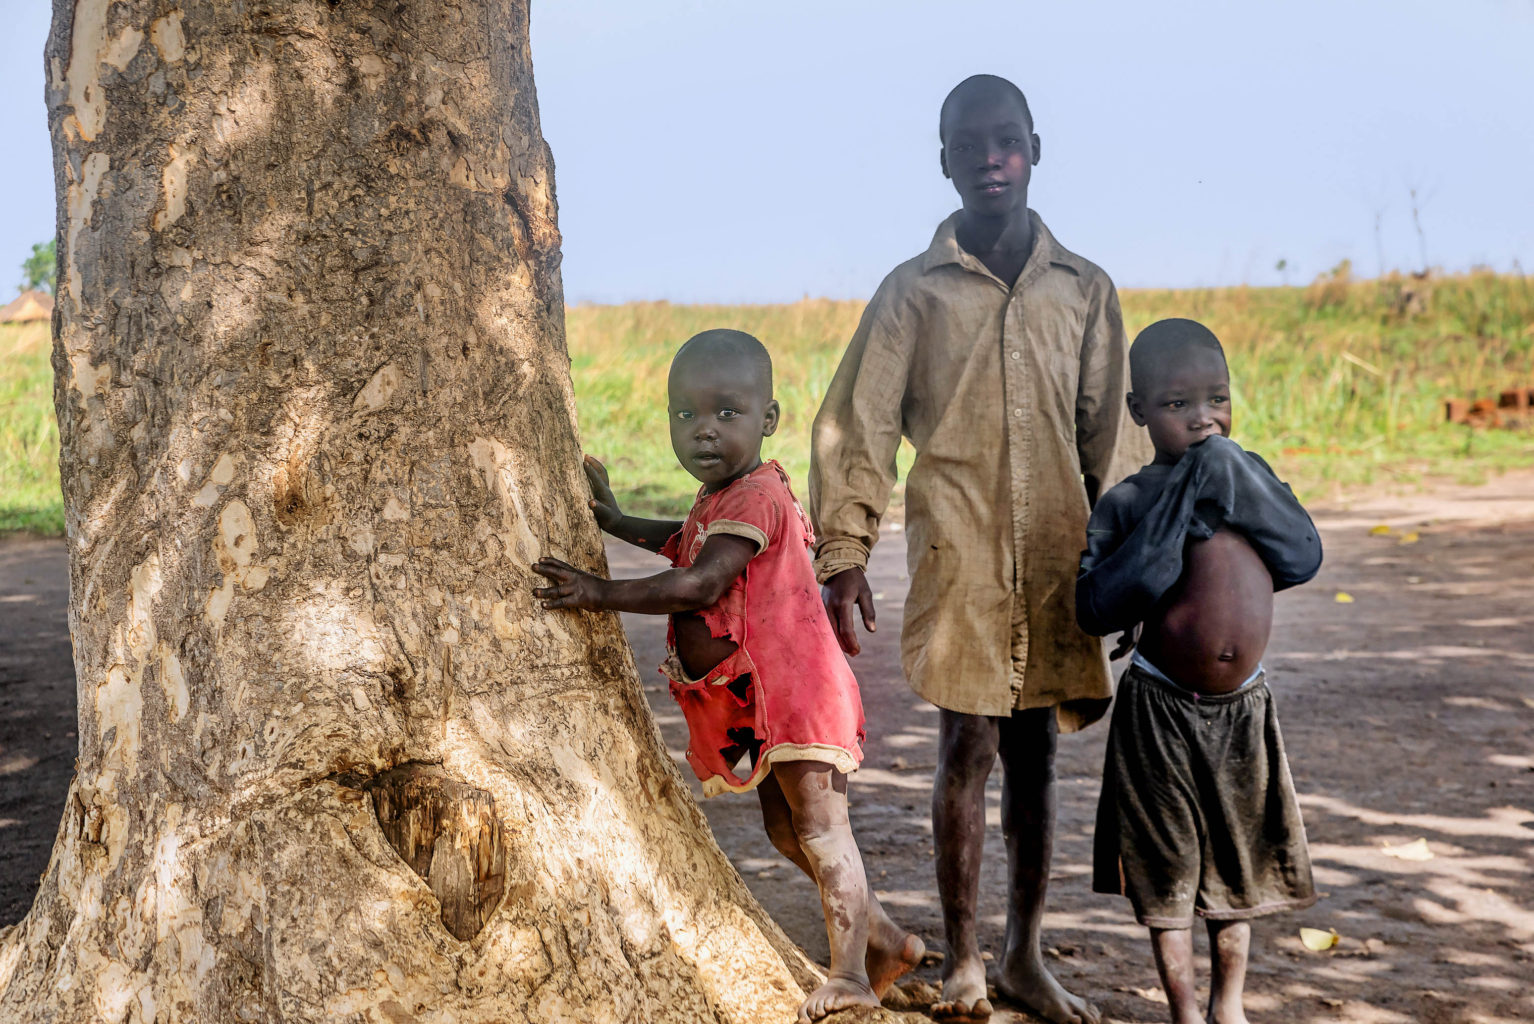 Uganda, Africa- April 2, 2016: Children living in the Village near Mbale city in Uganda Africa